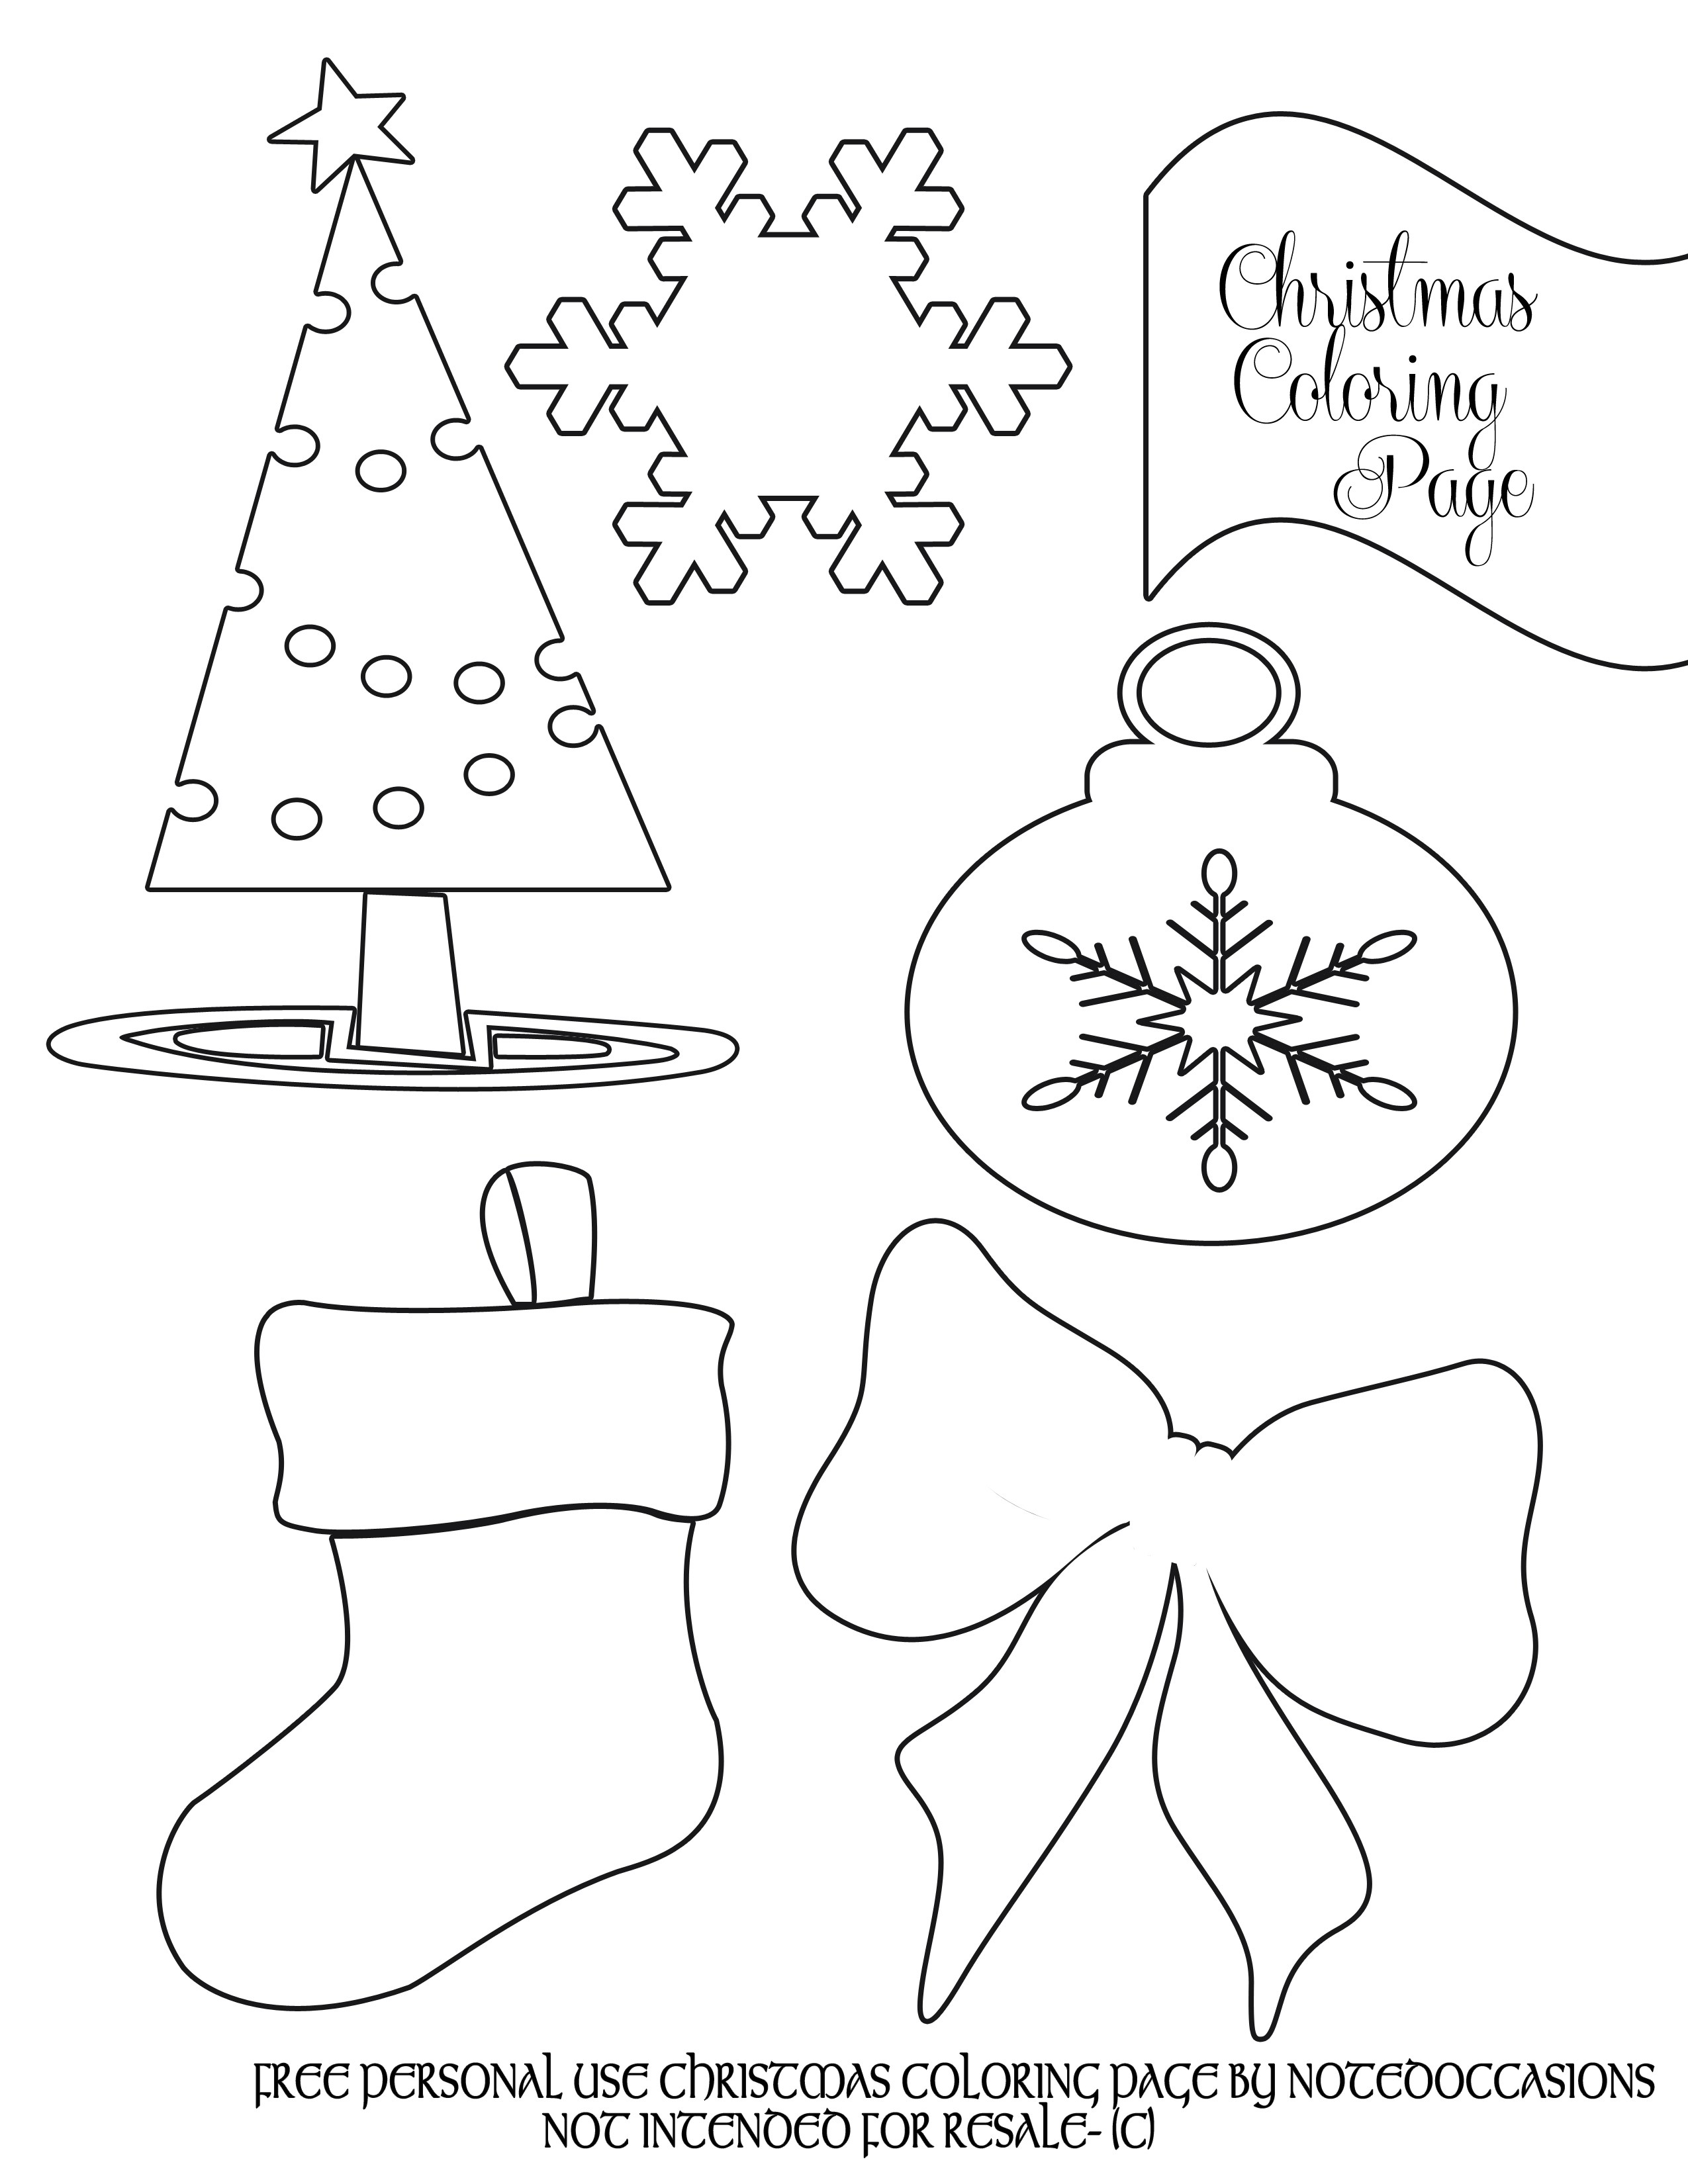 Christmas Coloring Pages For Elementary School With Party Simplicity Free To Print